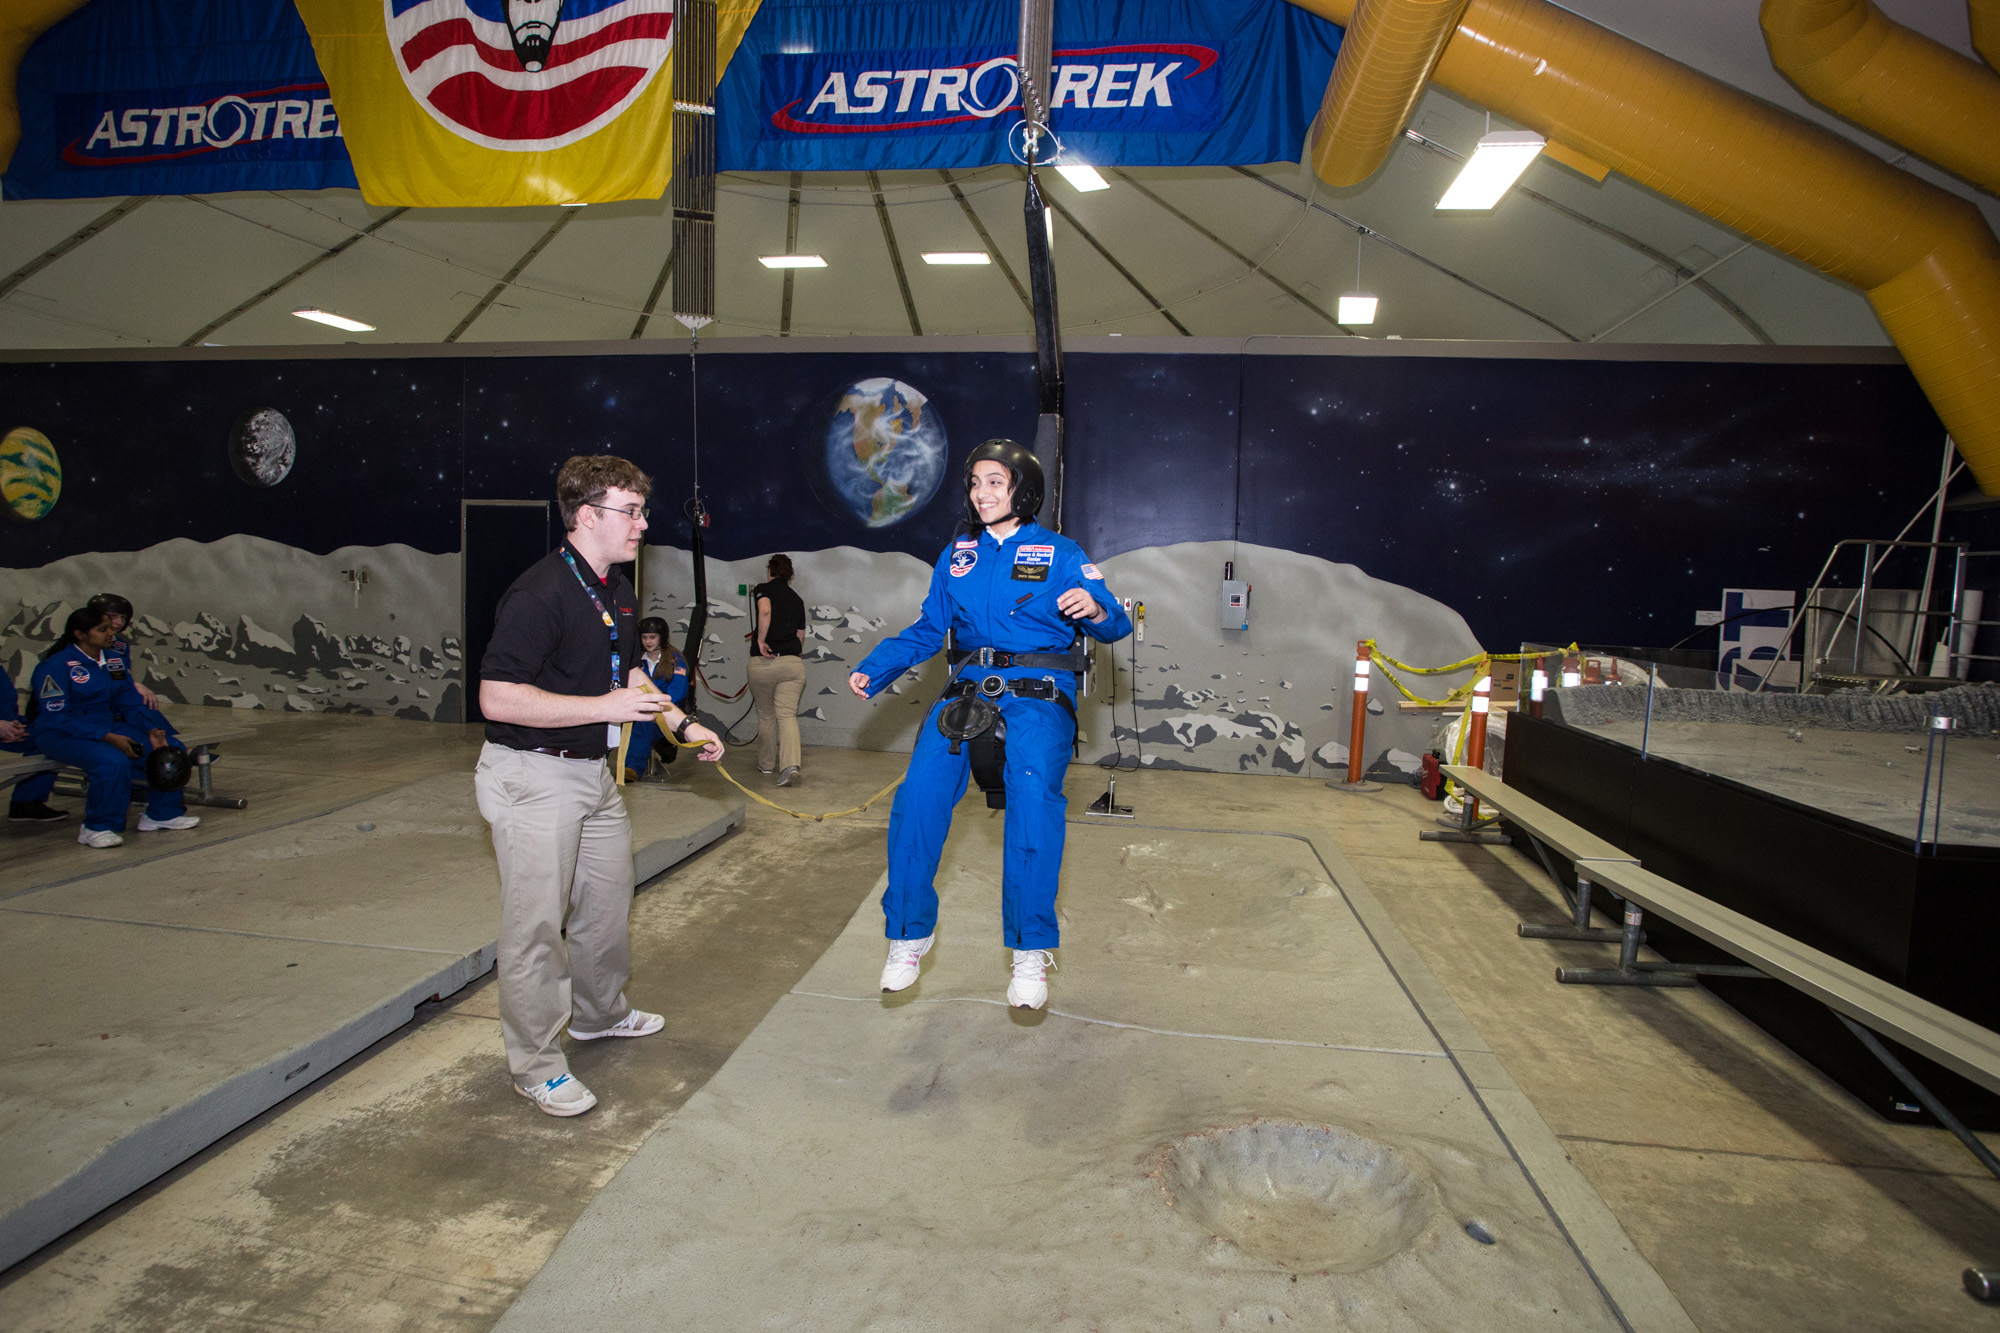 Honeywell Leadership Challenge Academy provides innovative activities to help develop students' leadership skills through technology and science-oriented activities like shuttle missions and a moon walk.